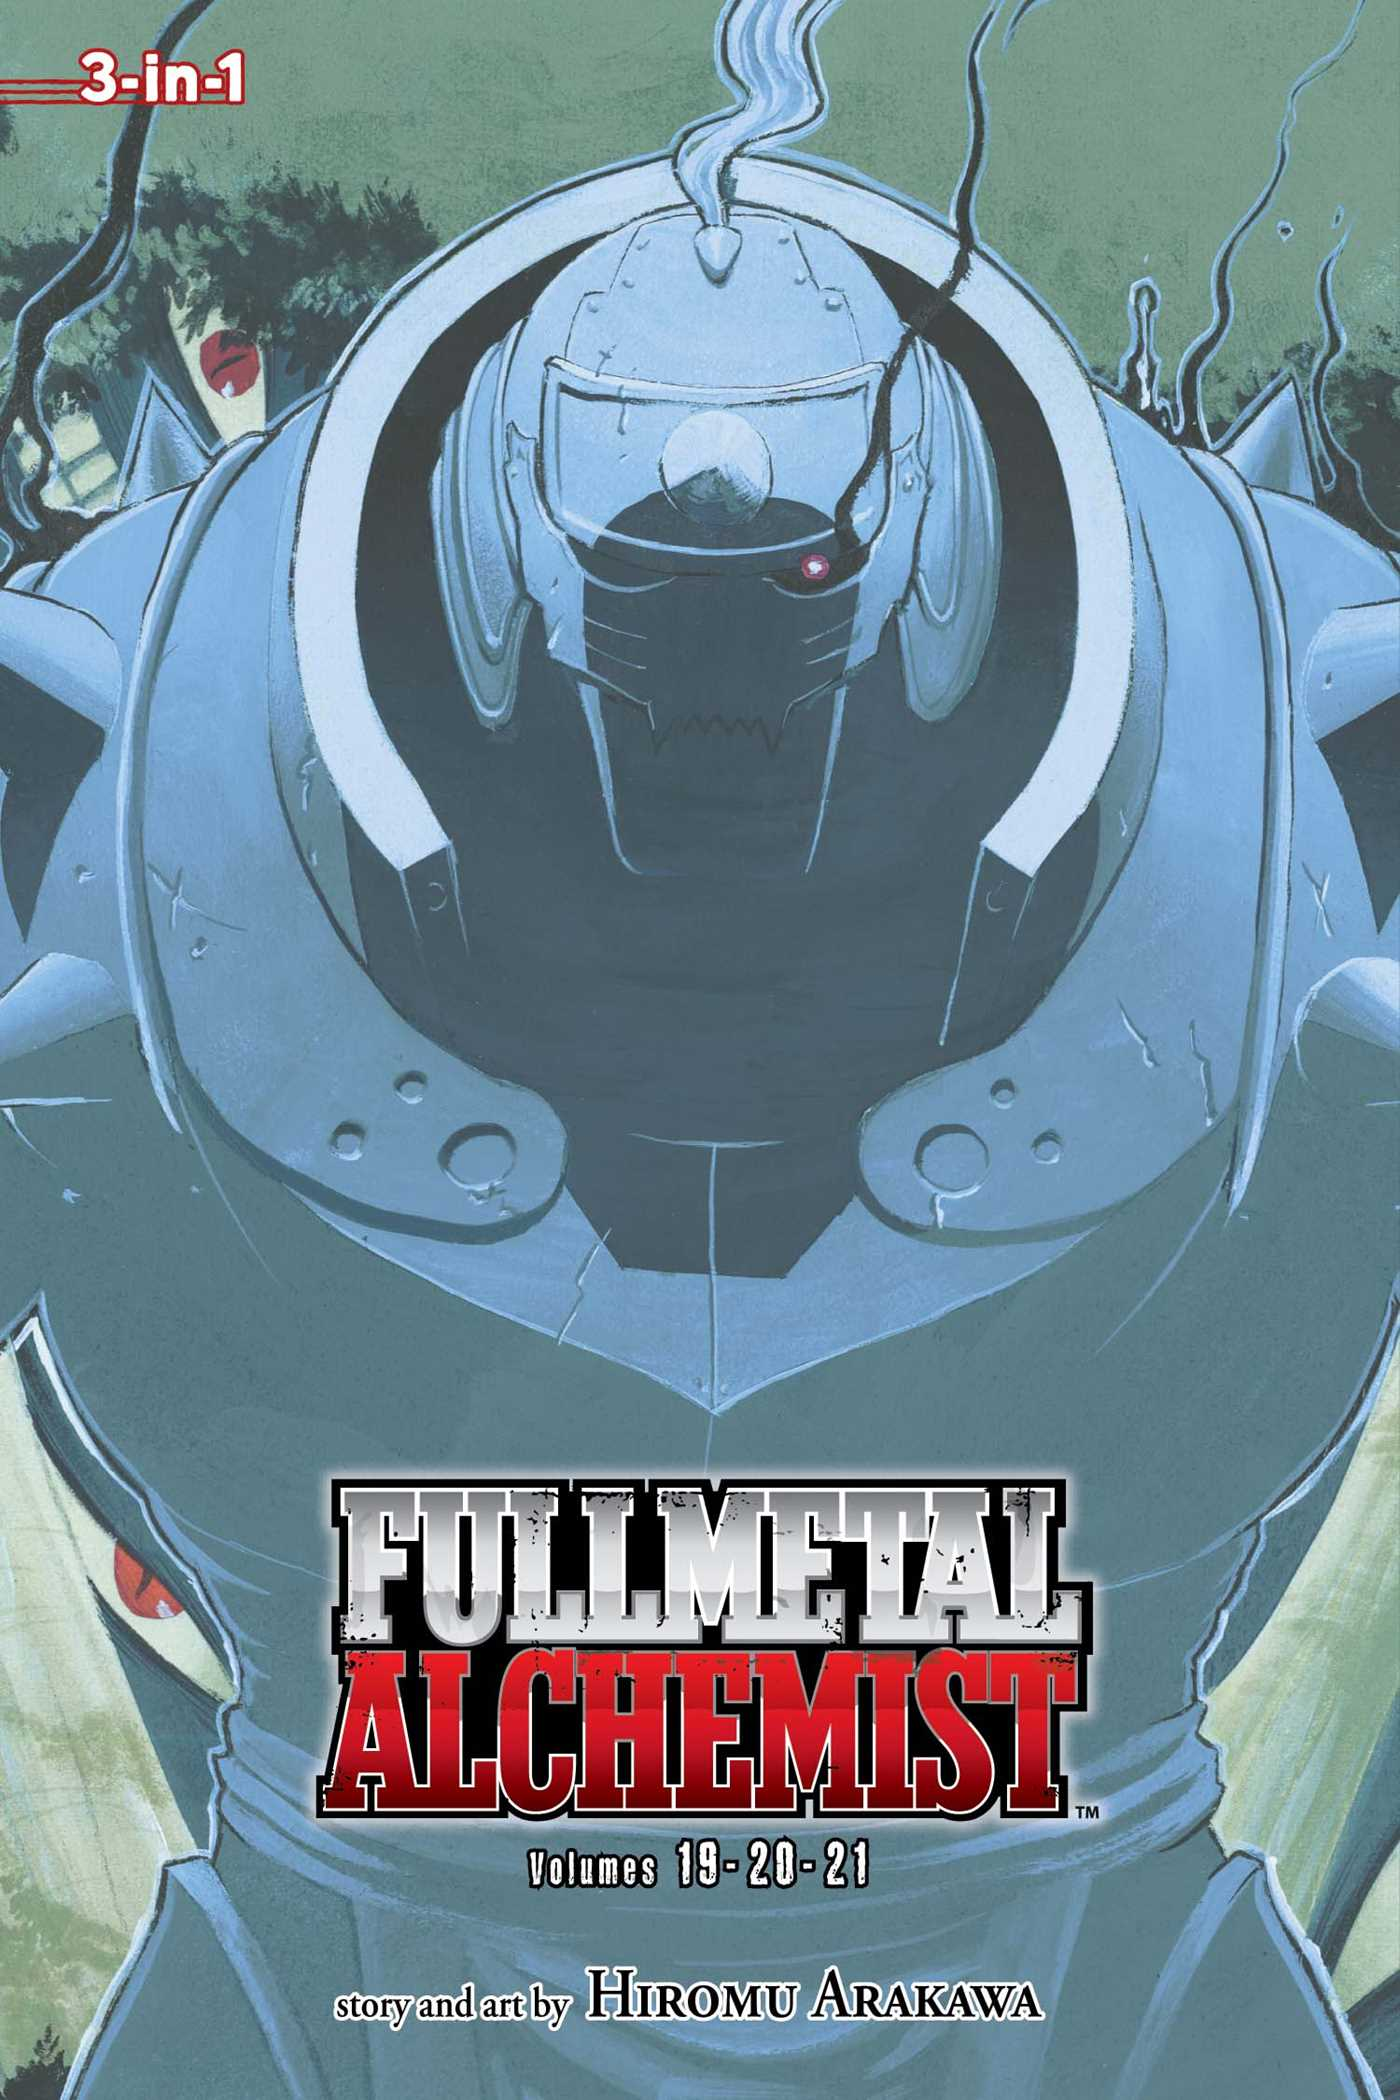 Fullmetal alchemist 3 in 1 edition vol 7 9781421554945 hr